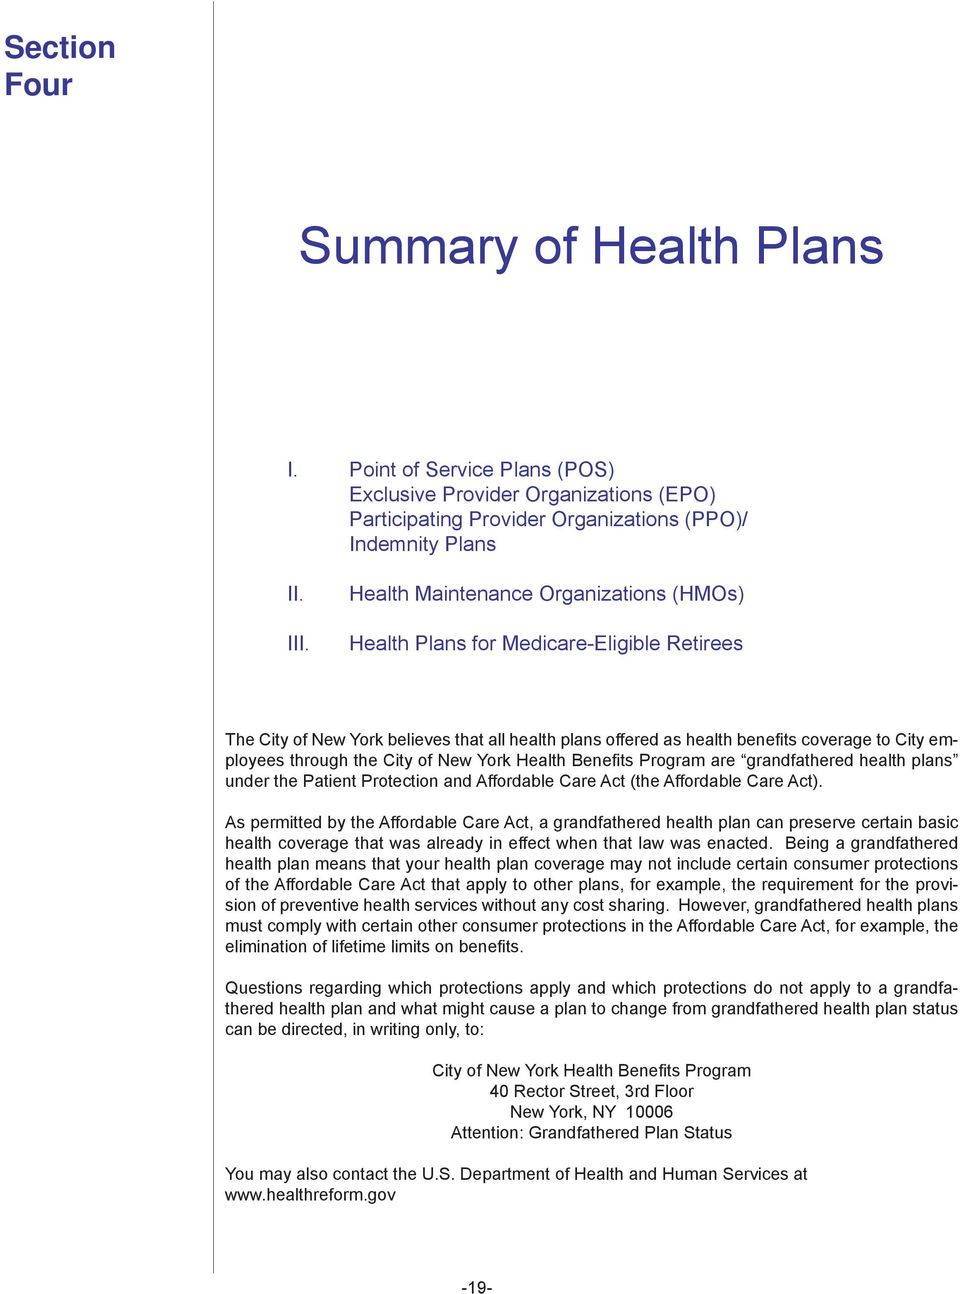 the City of New York Health Benefi ts Program are grandfathered health plans under the Patient Protection and Affordable Care Act (the Affordable Care Act).